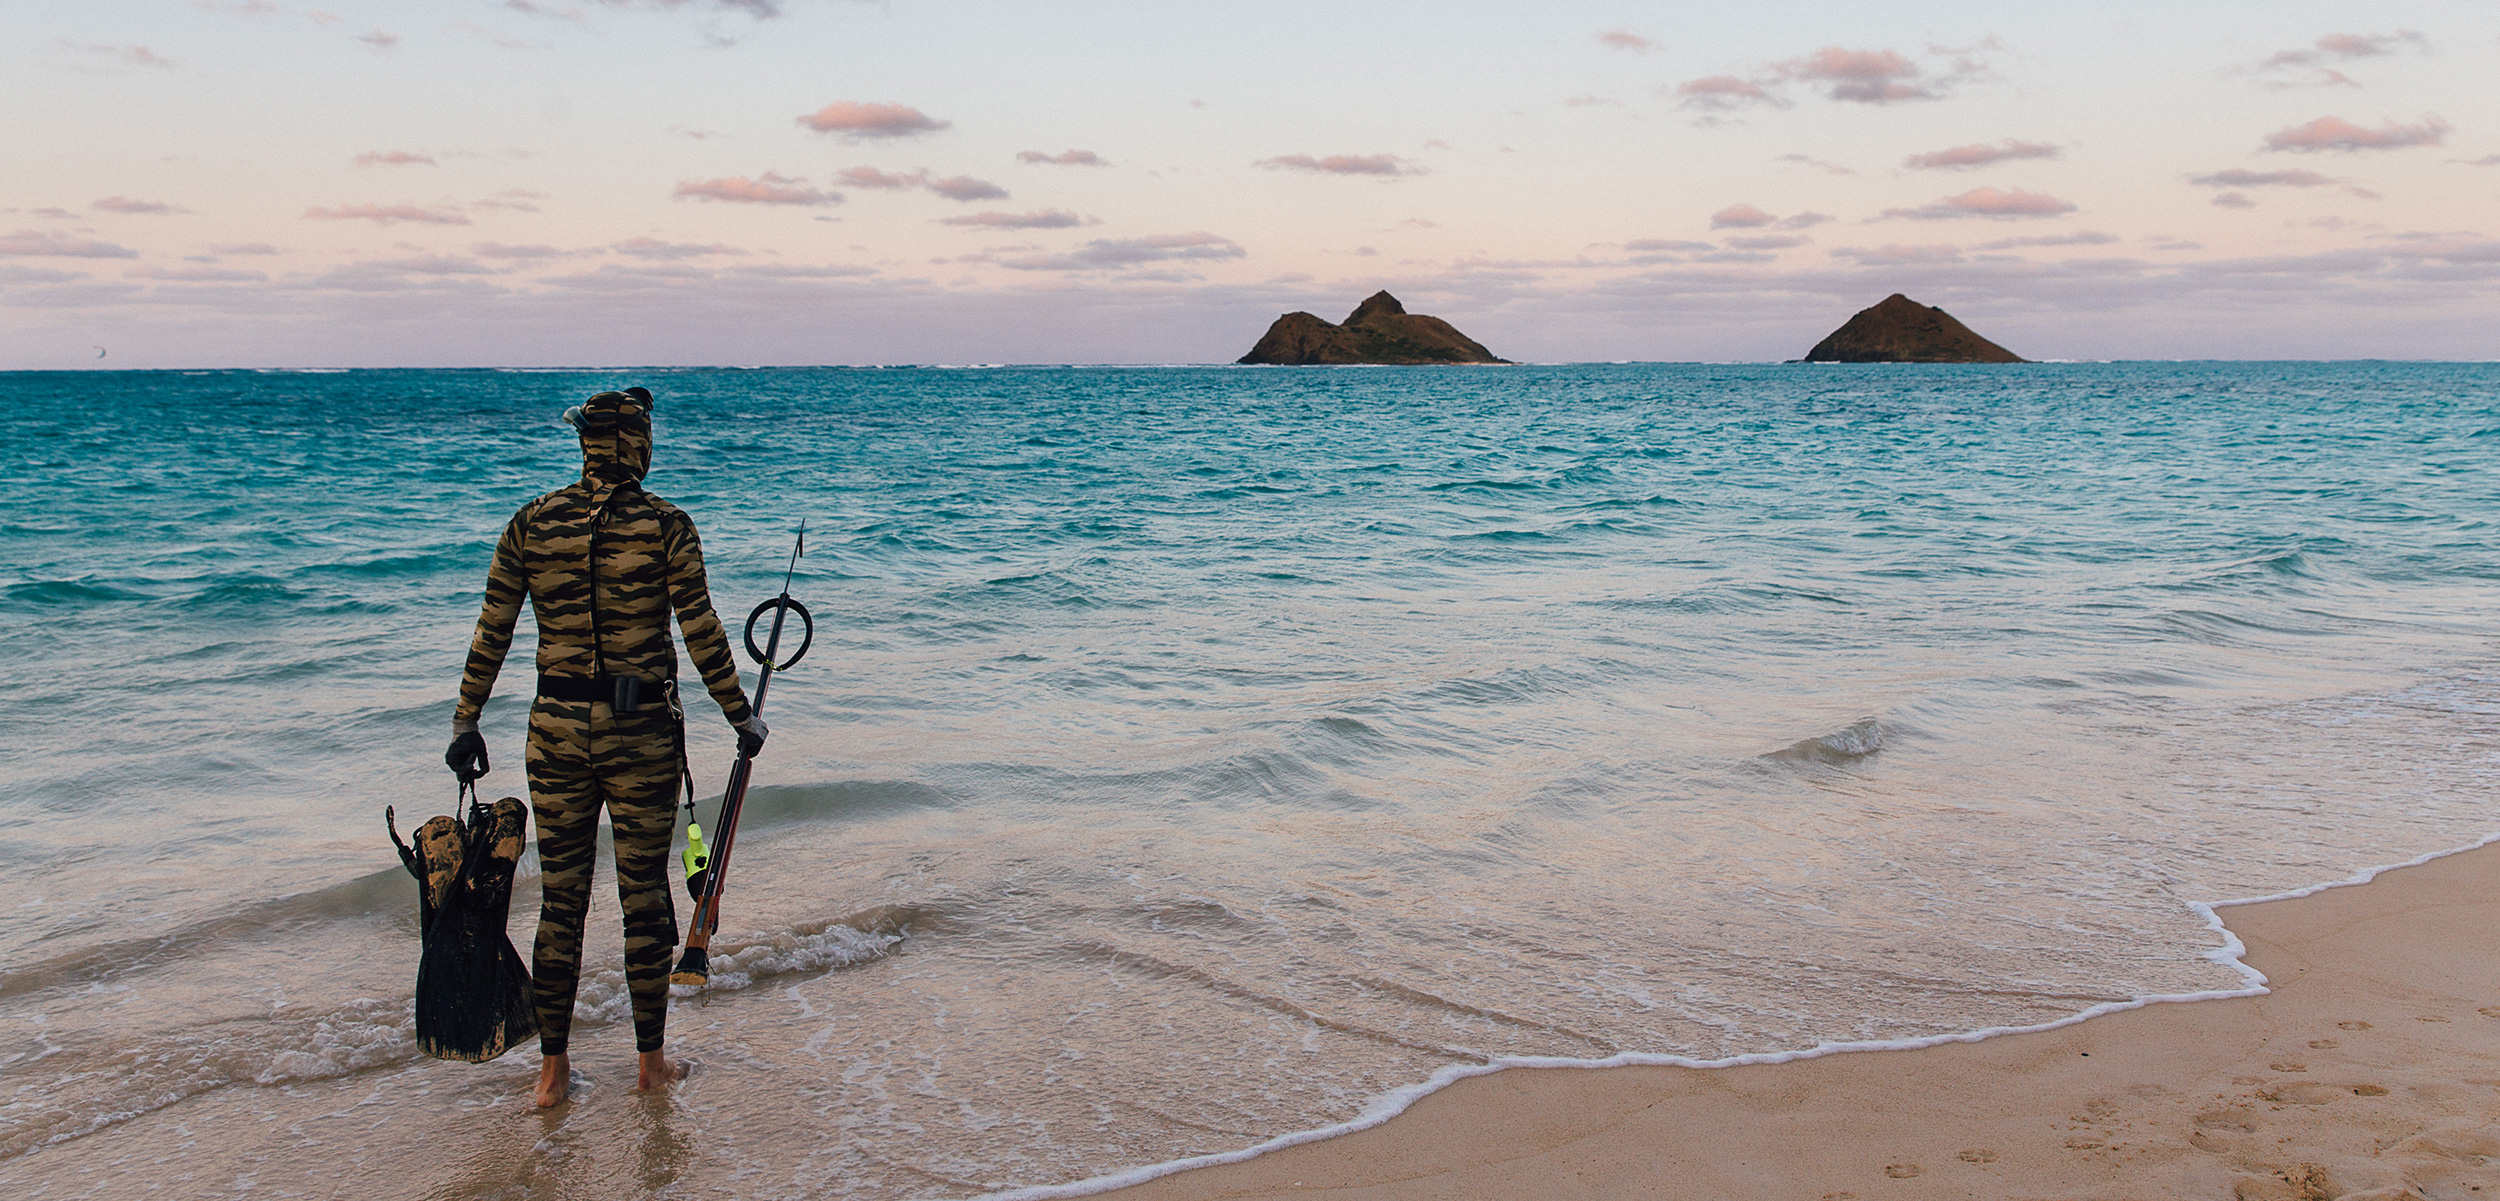 For some Hawaiian residents like Kellen Parenzin of O'ahu, spearfishing is about participating in and forging a spiritual connection to the ecosystem beneath the waves. Photo by Meagan Suzuki